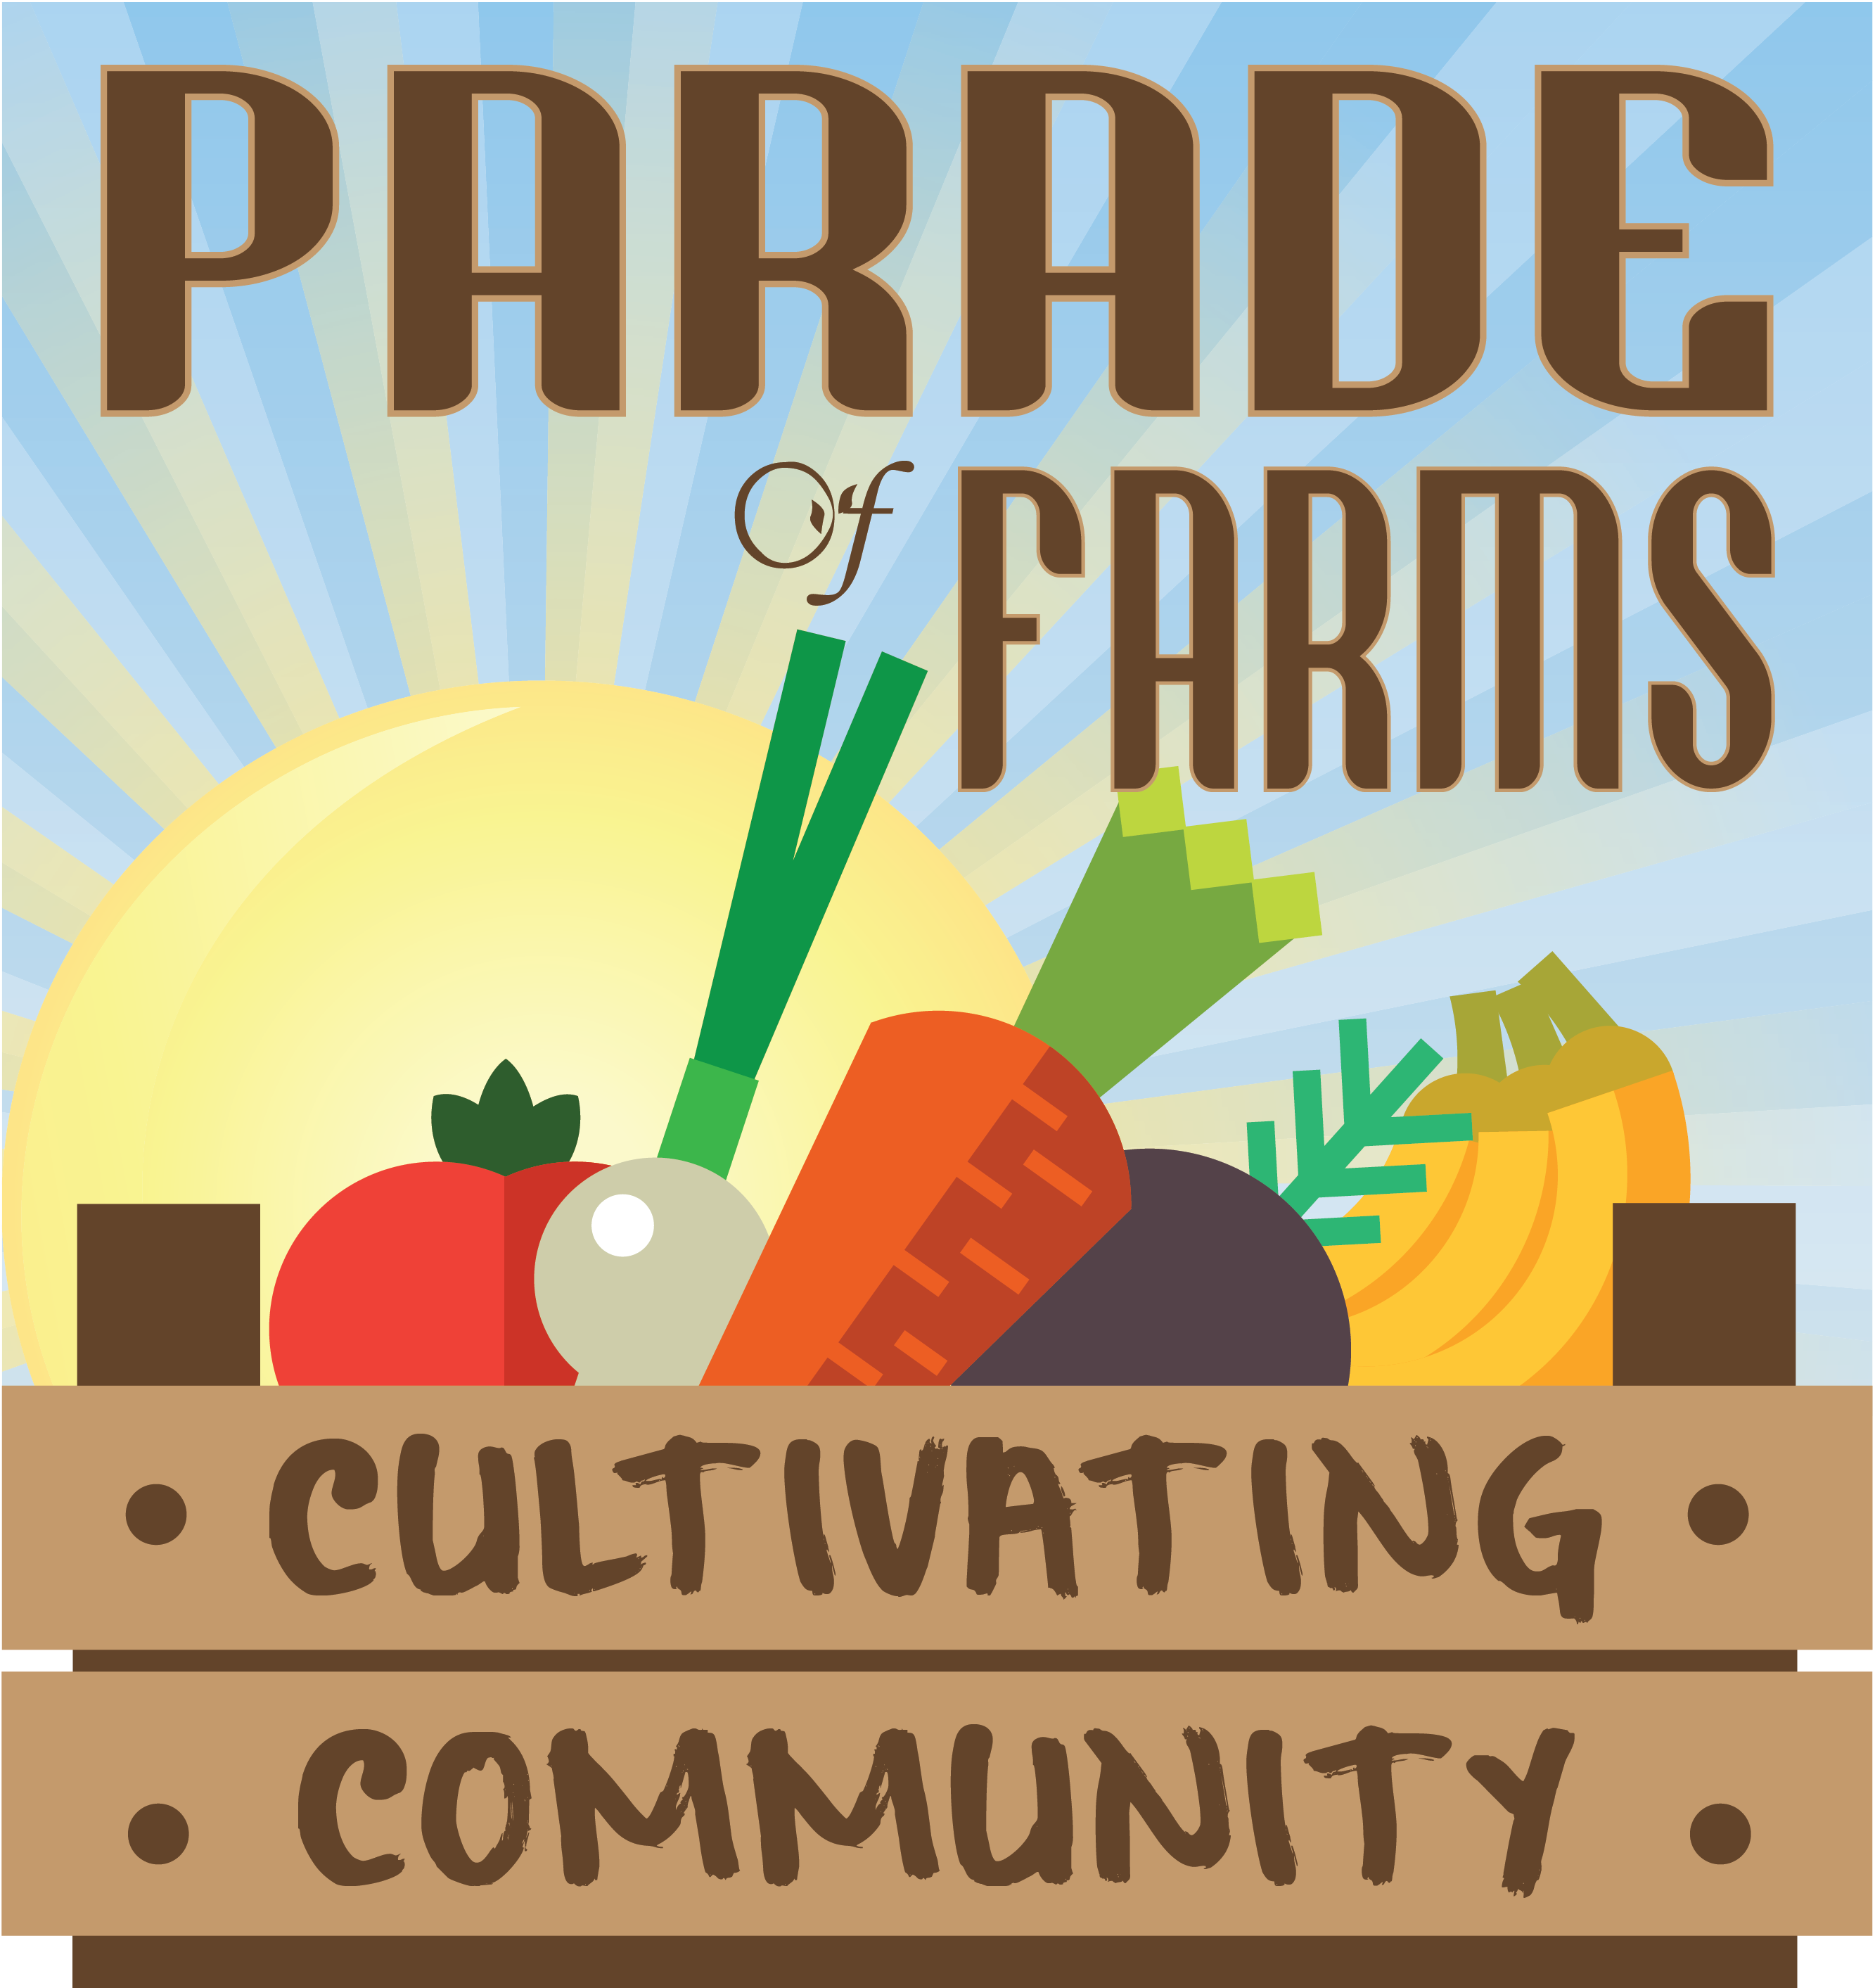 Parade of Farms